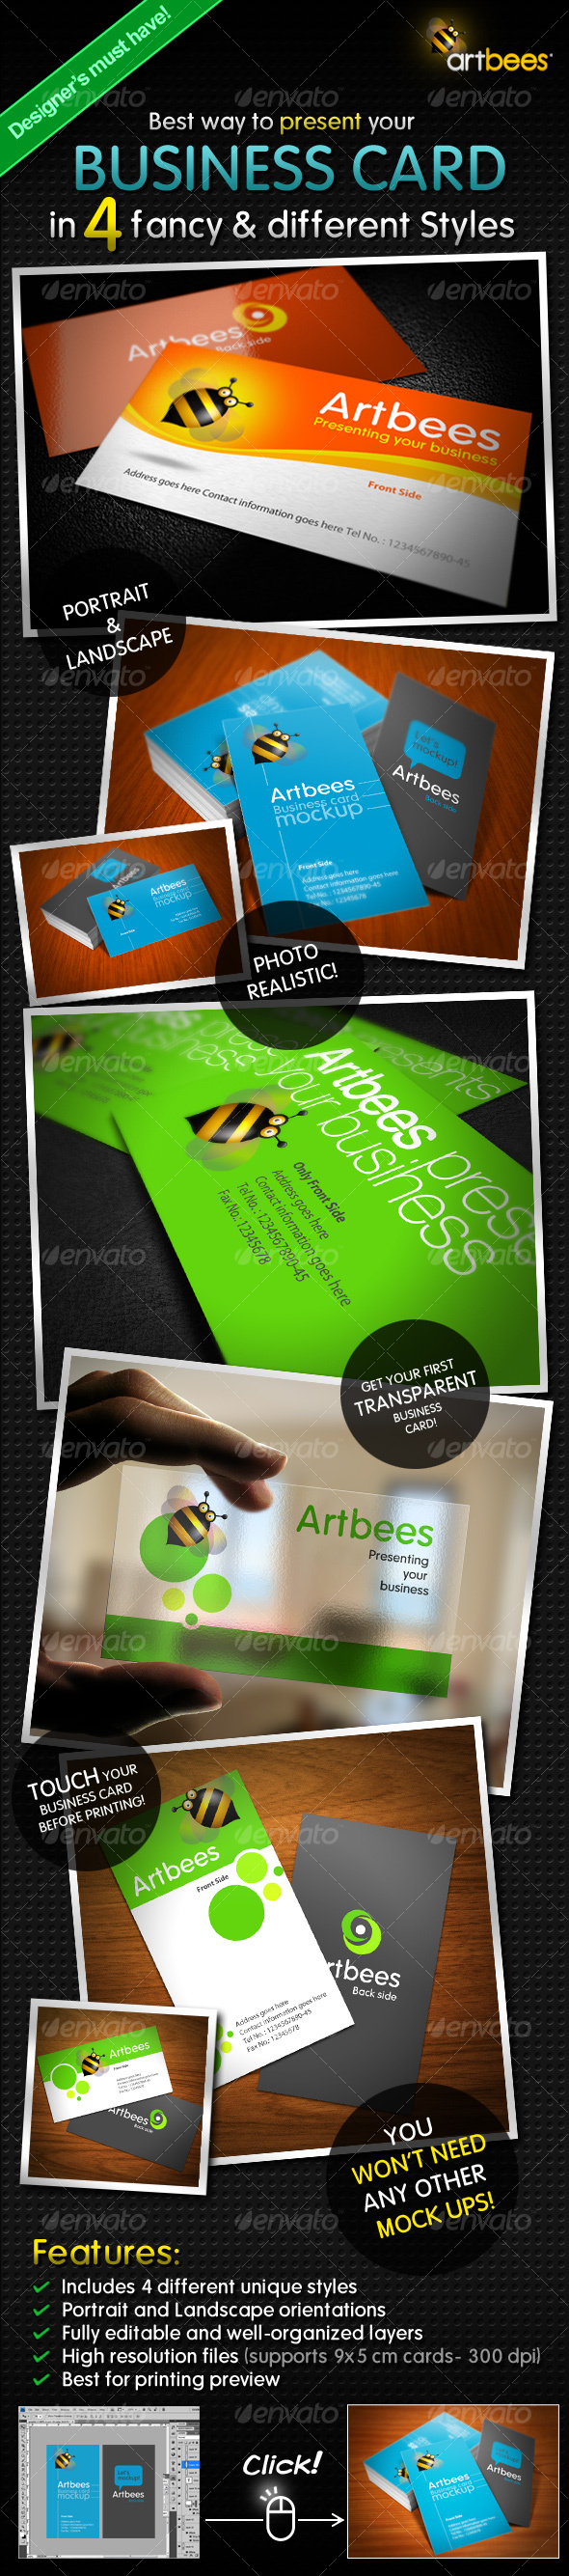 GraphicRiver – Great Business Card Mockup Pack 4 Styles